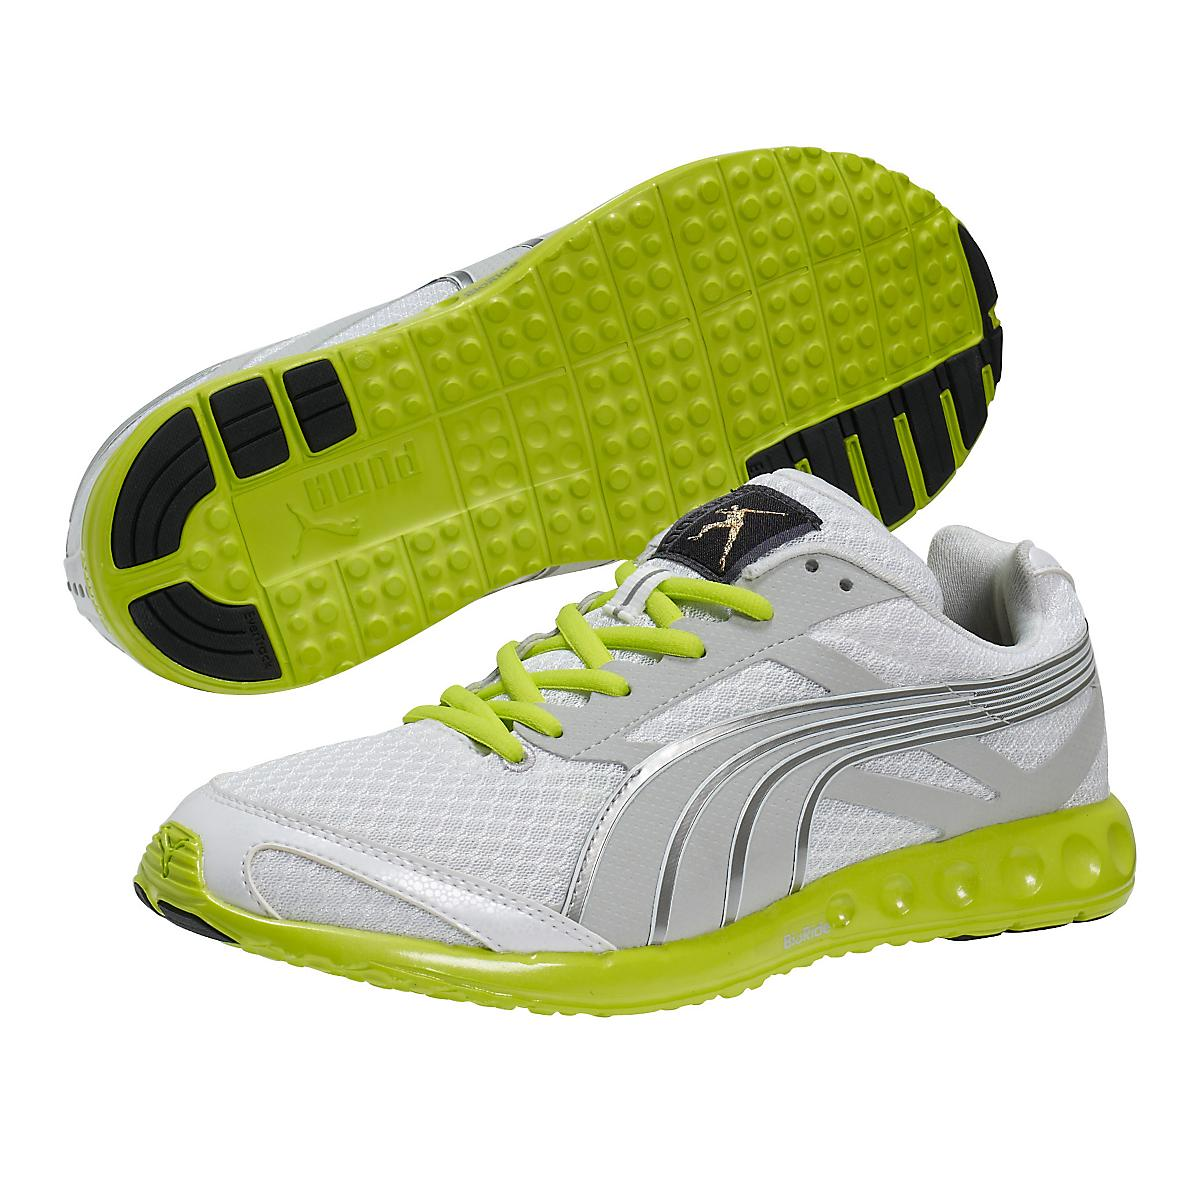 Womens Puma Bolt Faas 400 Running Shoe at Road Runner Sports